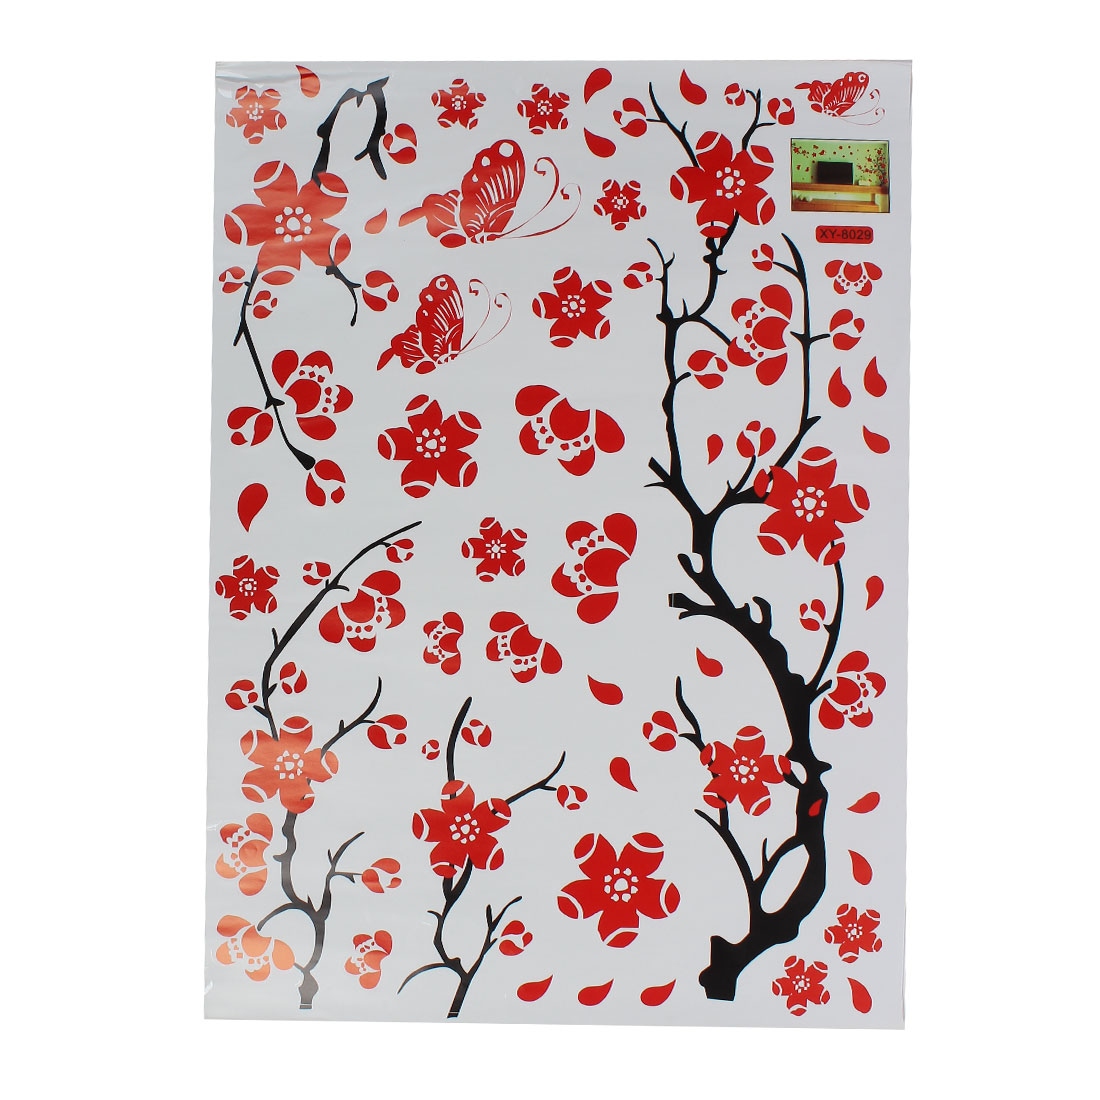 Vinyl Butterfly Tree Branch Trunk Wall Art Sticker Decal Home Decor Mural Red